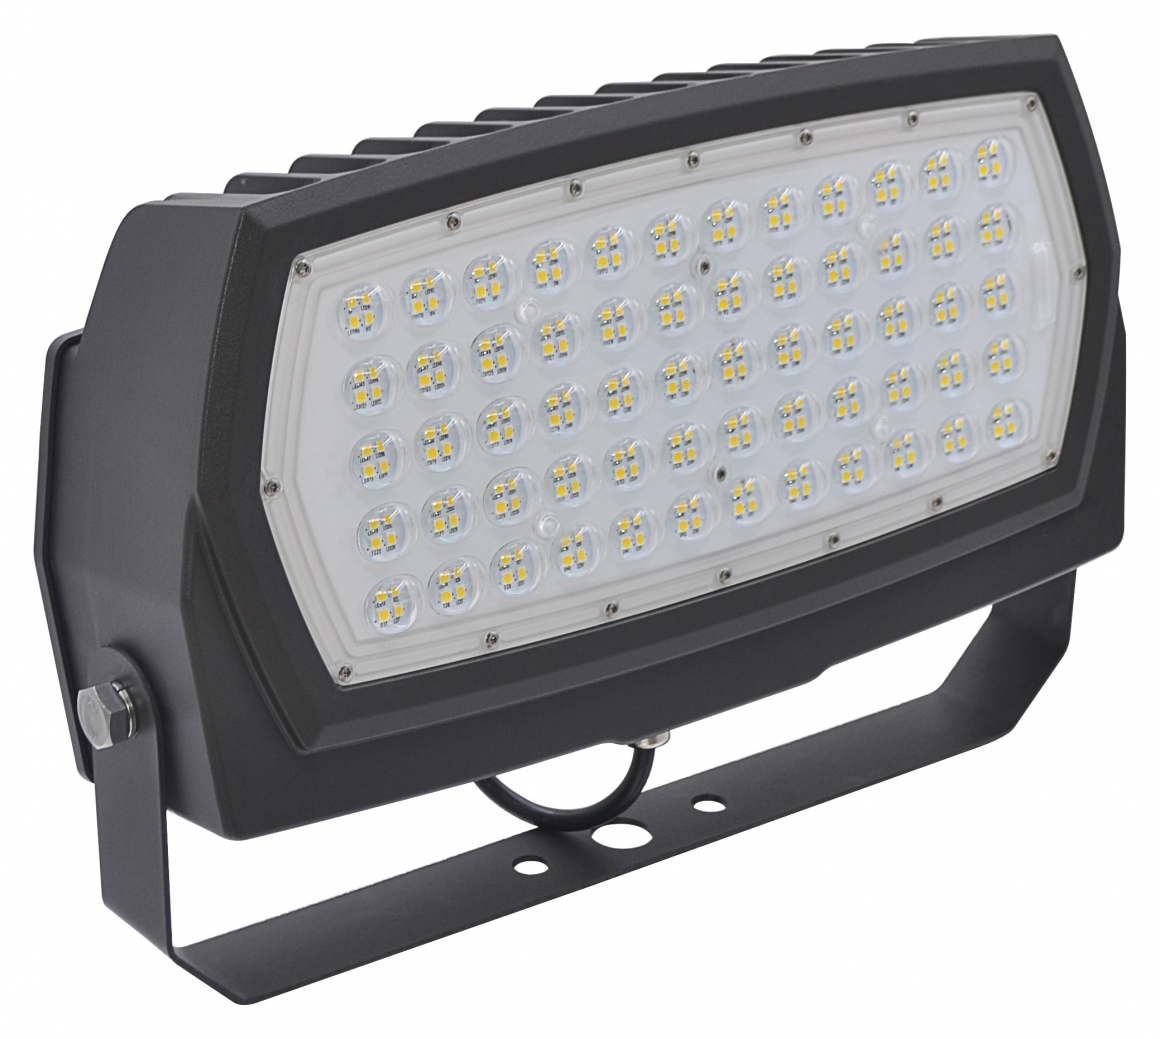 FL4/CL200BZ50U/YK 99676 LED EXTRA LARGE FLOOD 200W 5000K BRONZE 120-277V ARCH YOKE MOUNT